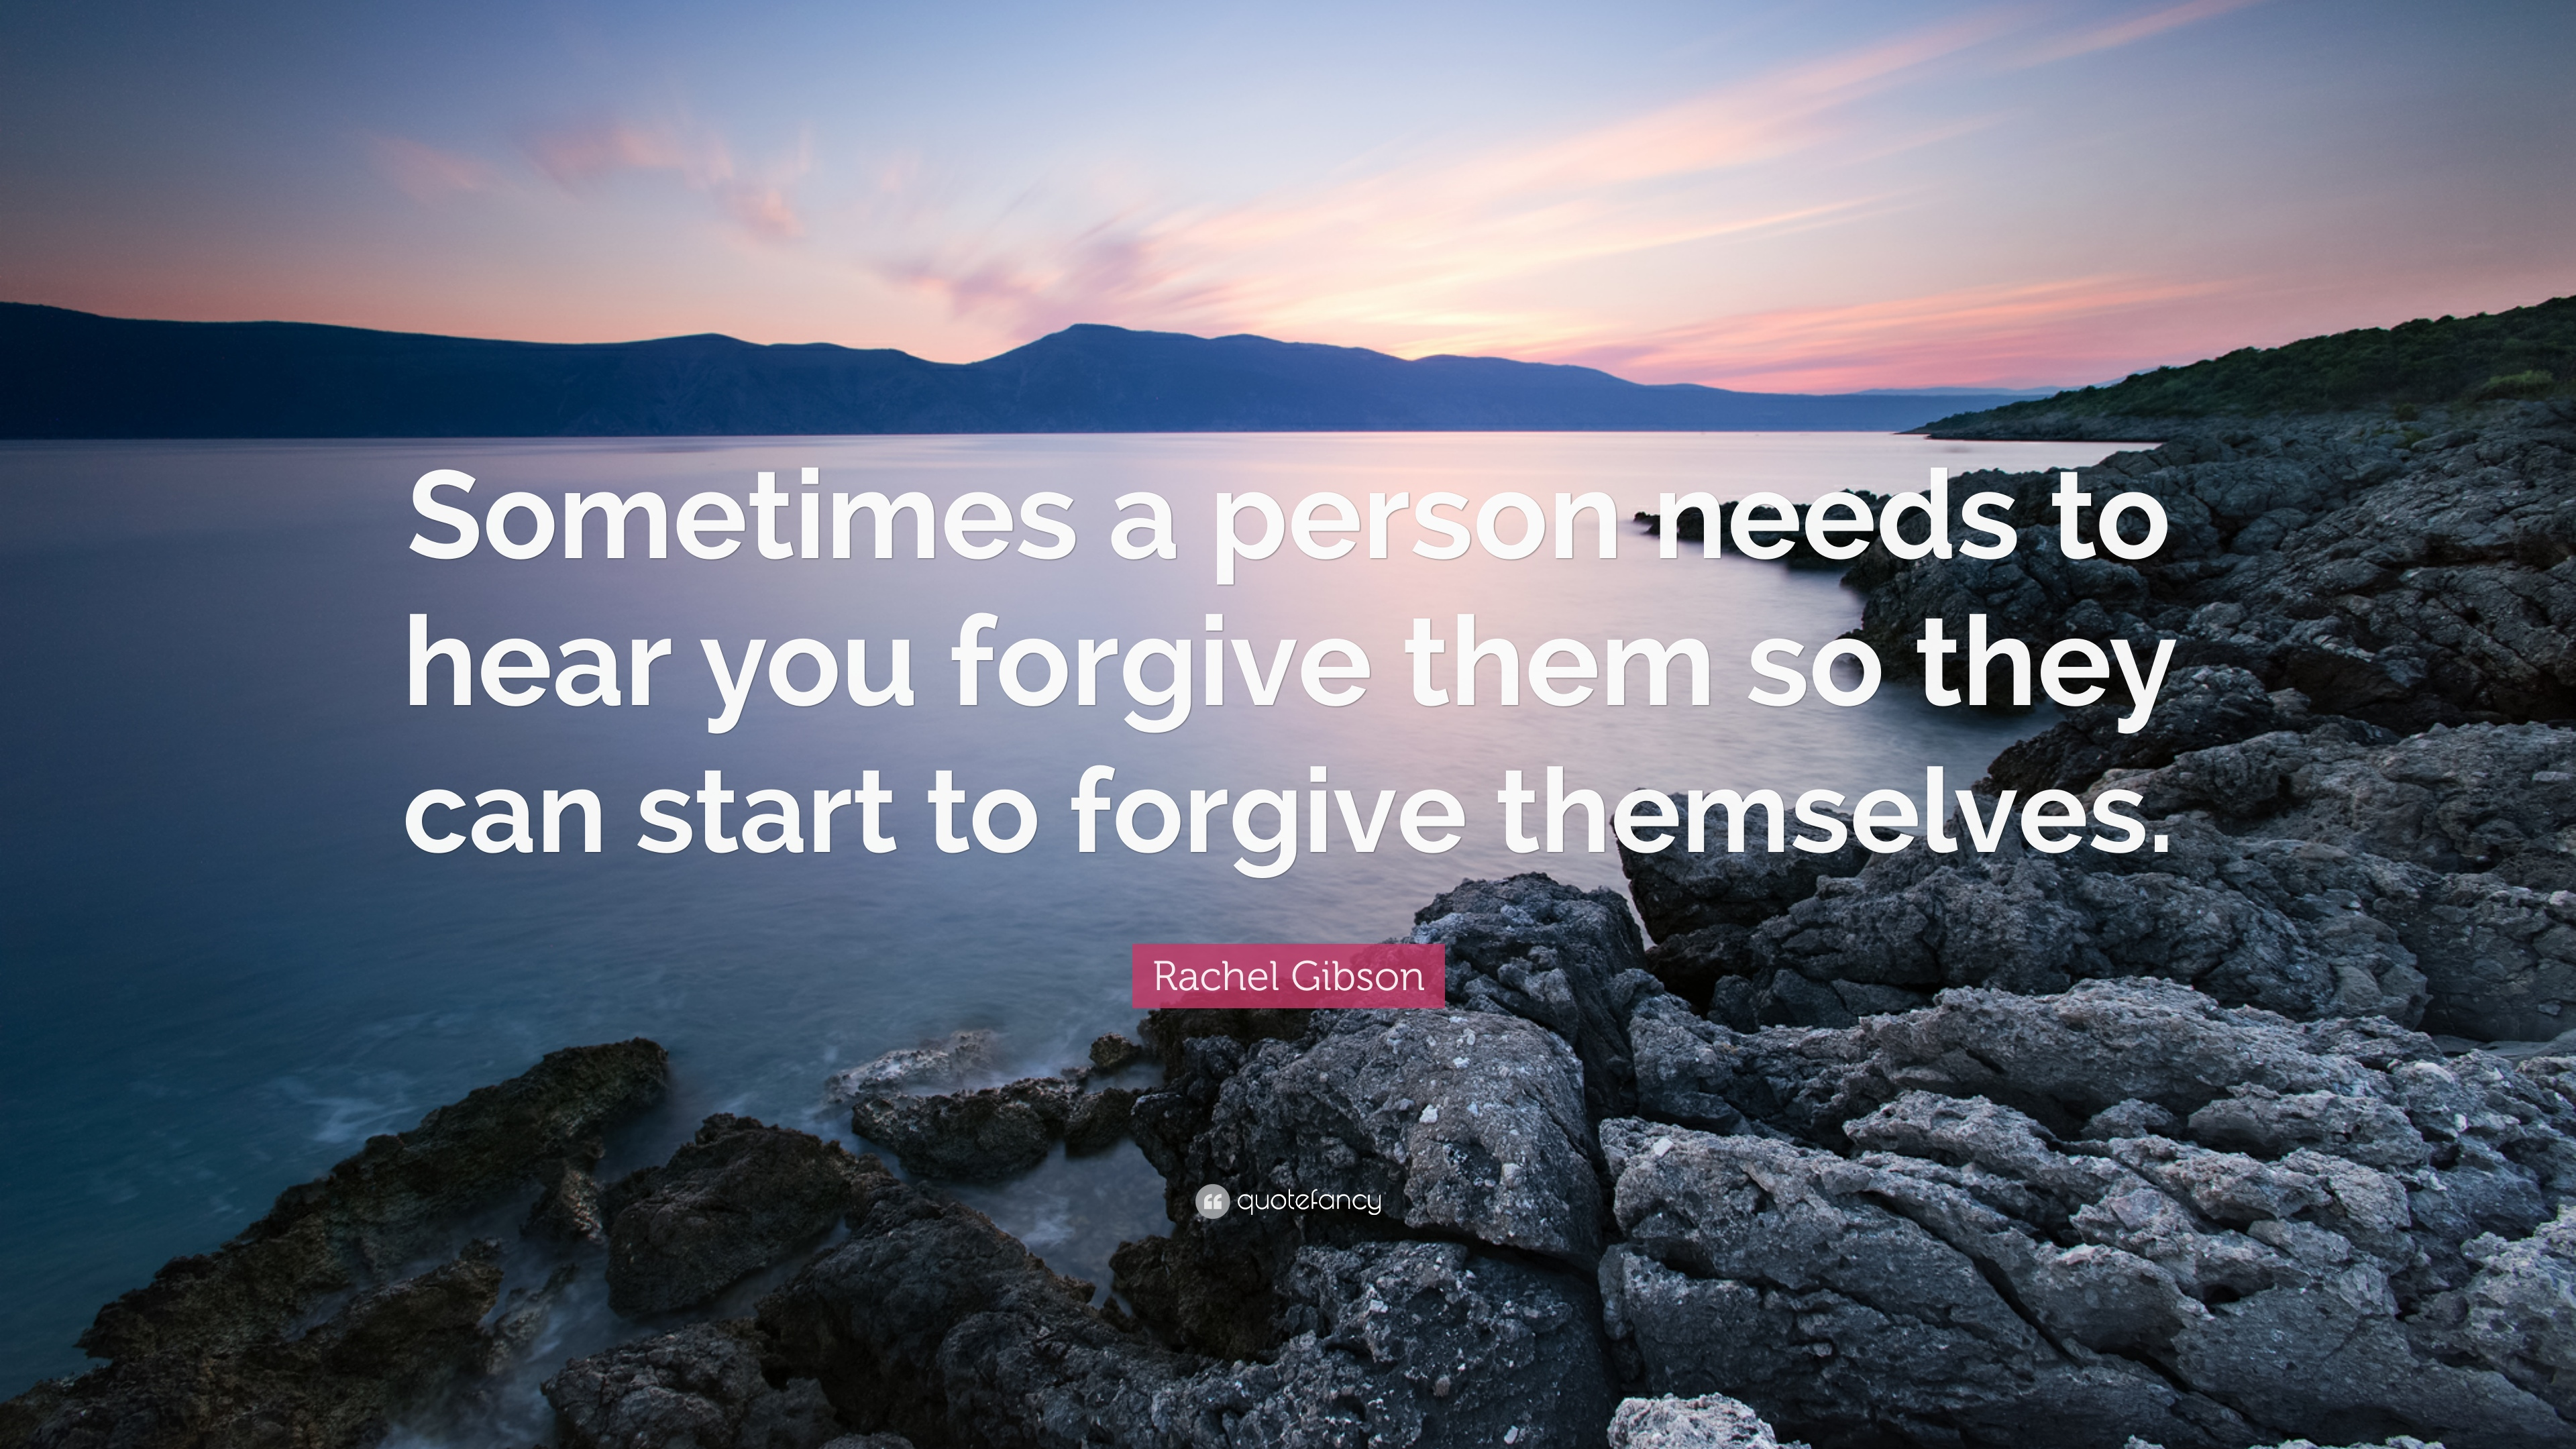 Forum on this topic: How you can start to forgive, how-you-can-start-to-forgive/